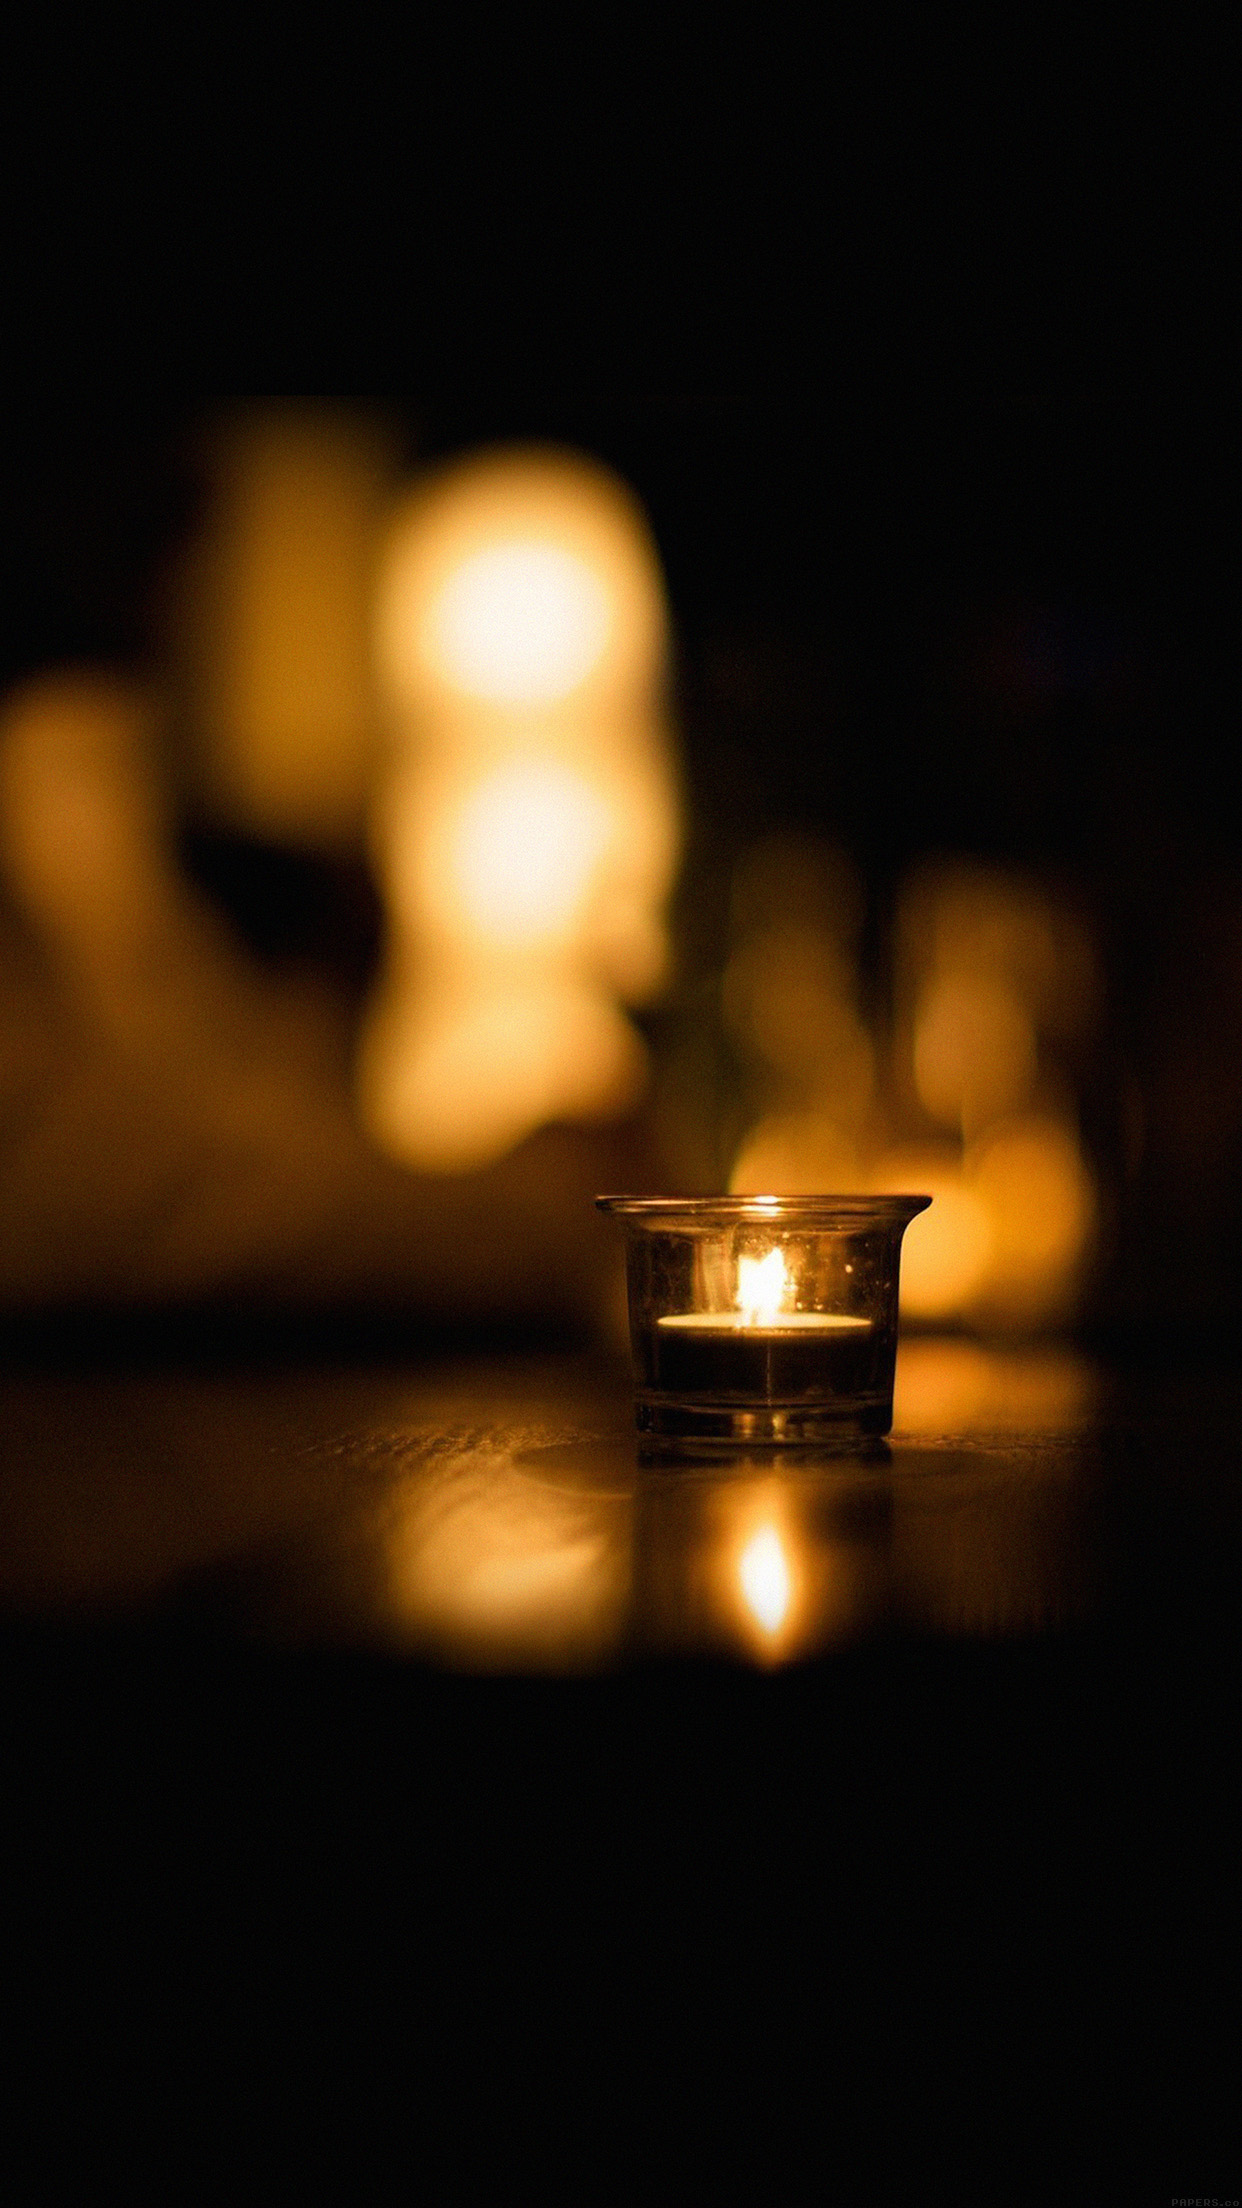 Candle: Light night romantic Wallpaper for iPhone 11, Pro ...